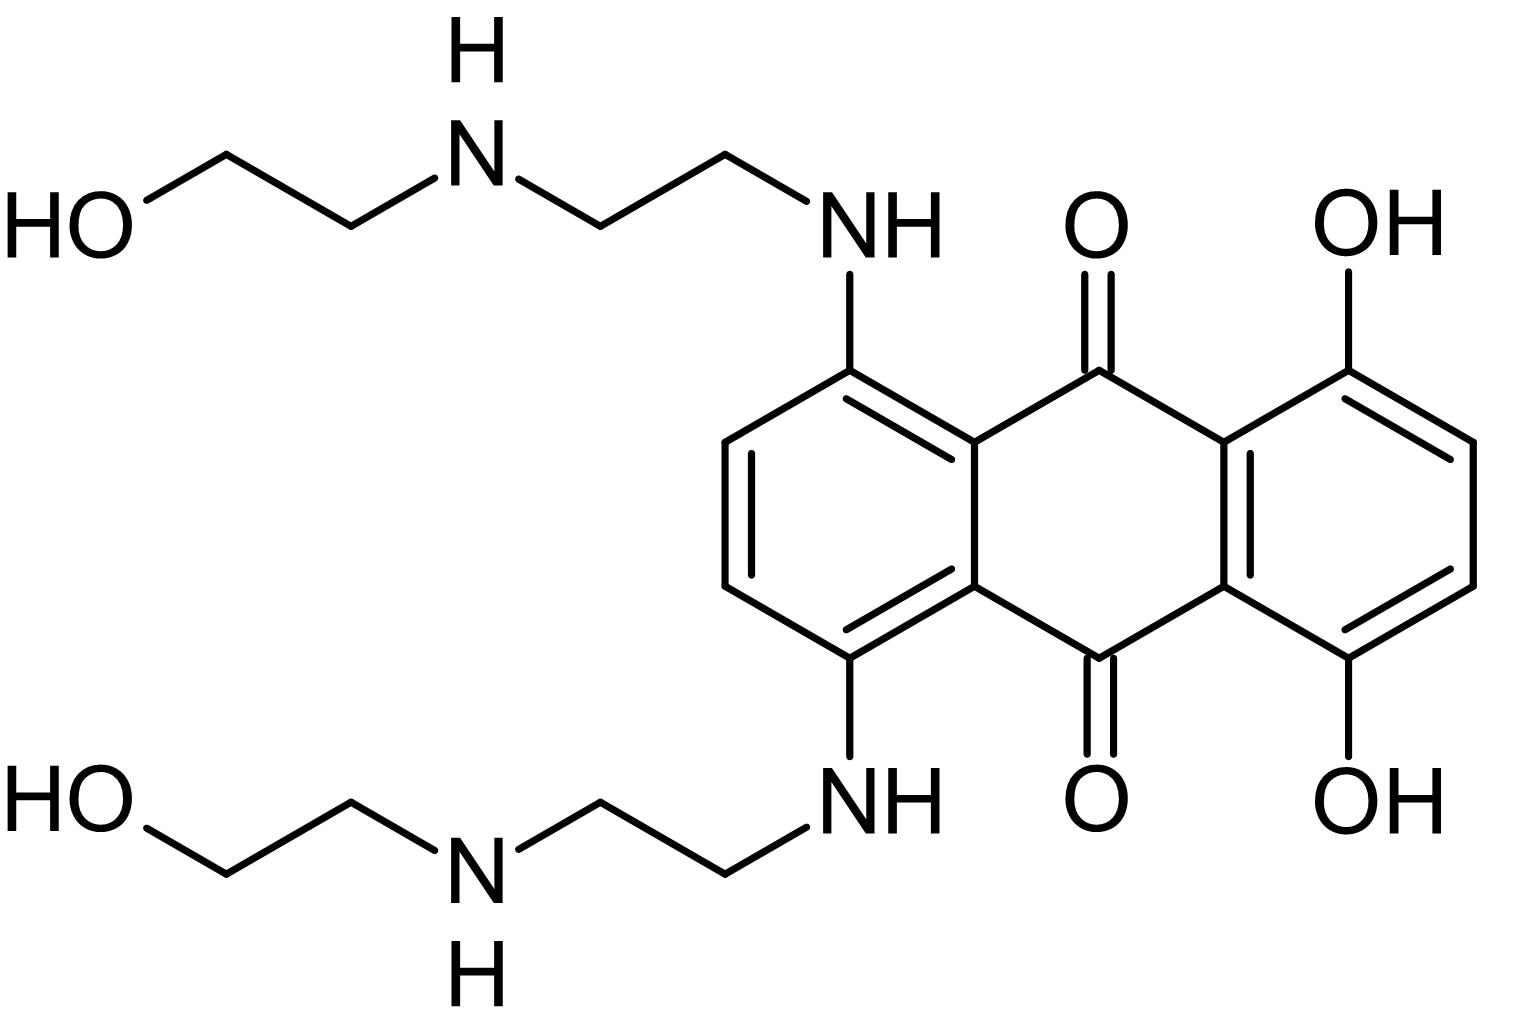 Chemical Structure - Mitoxantrone dihydrochloride, Type II topoisomerase inhibitor (ab141041)